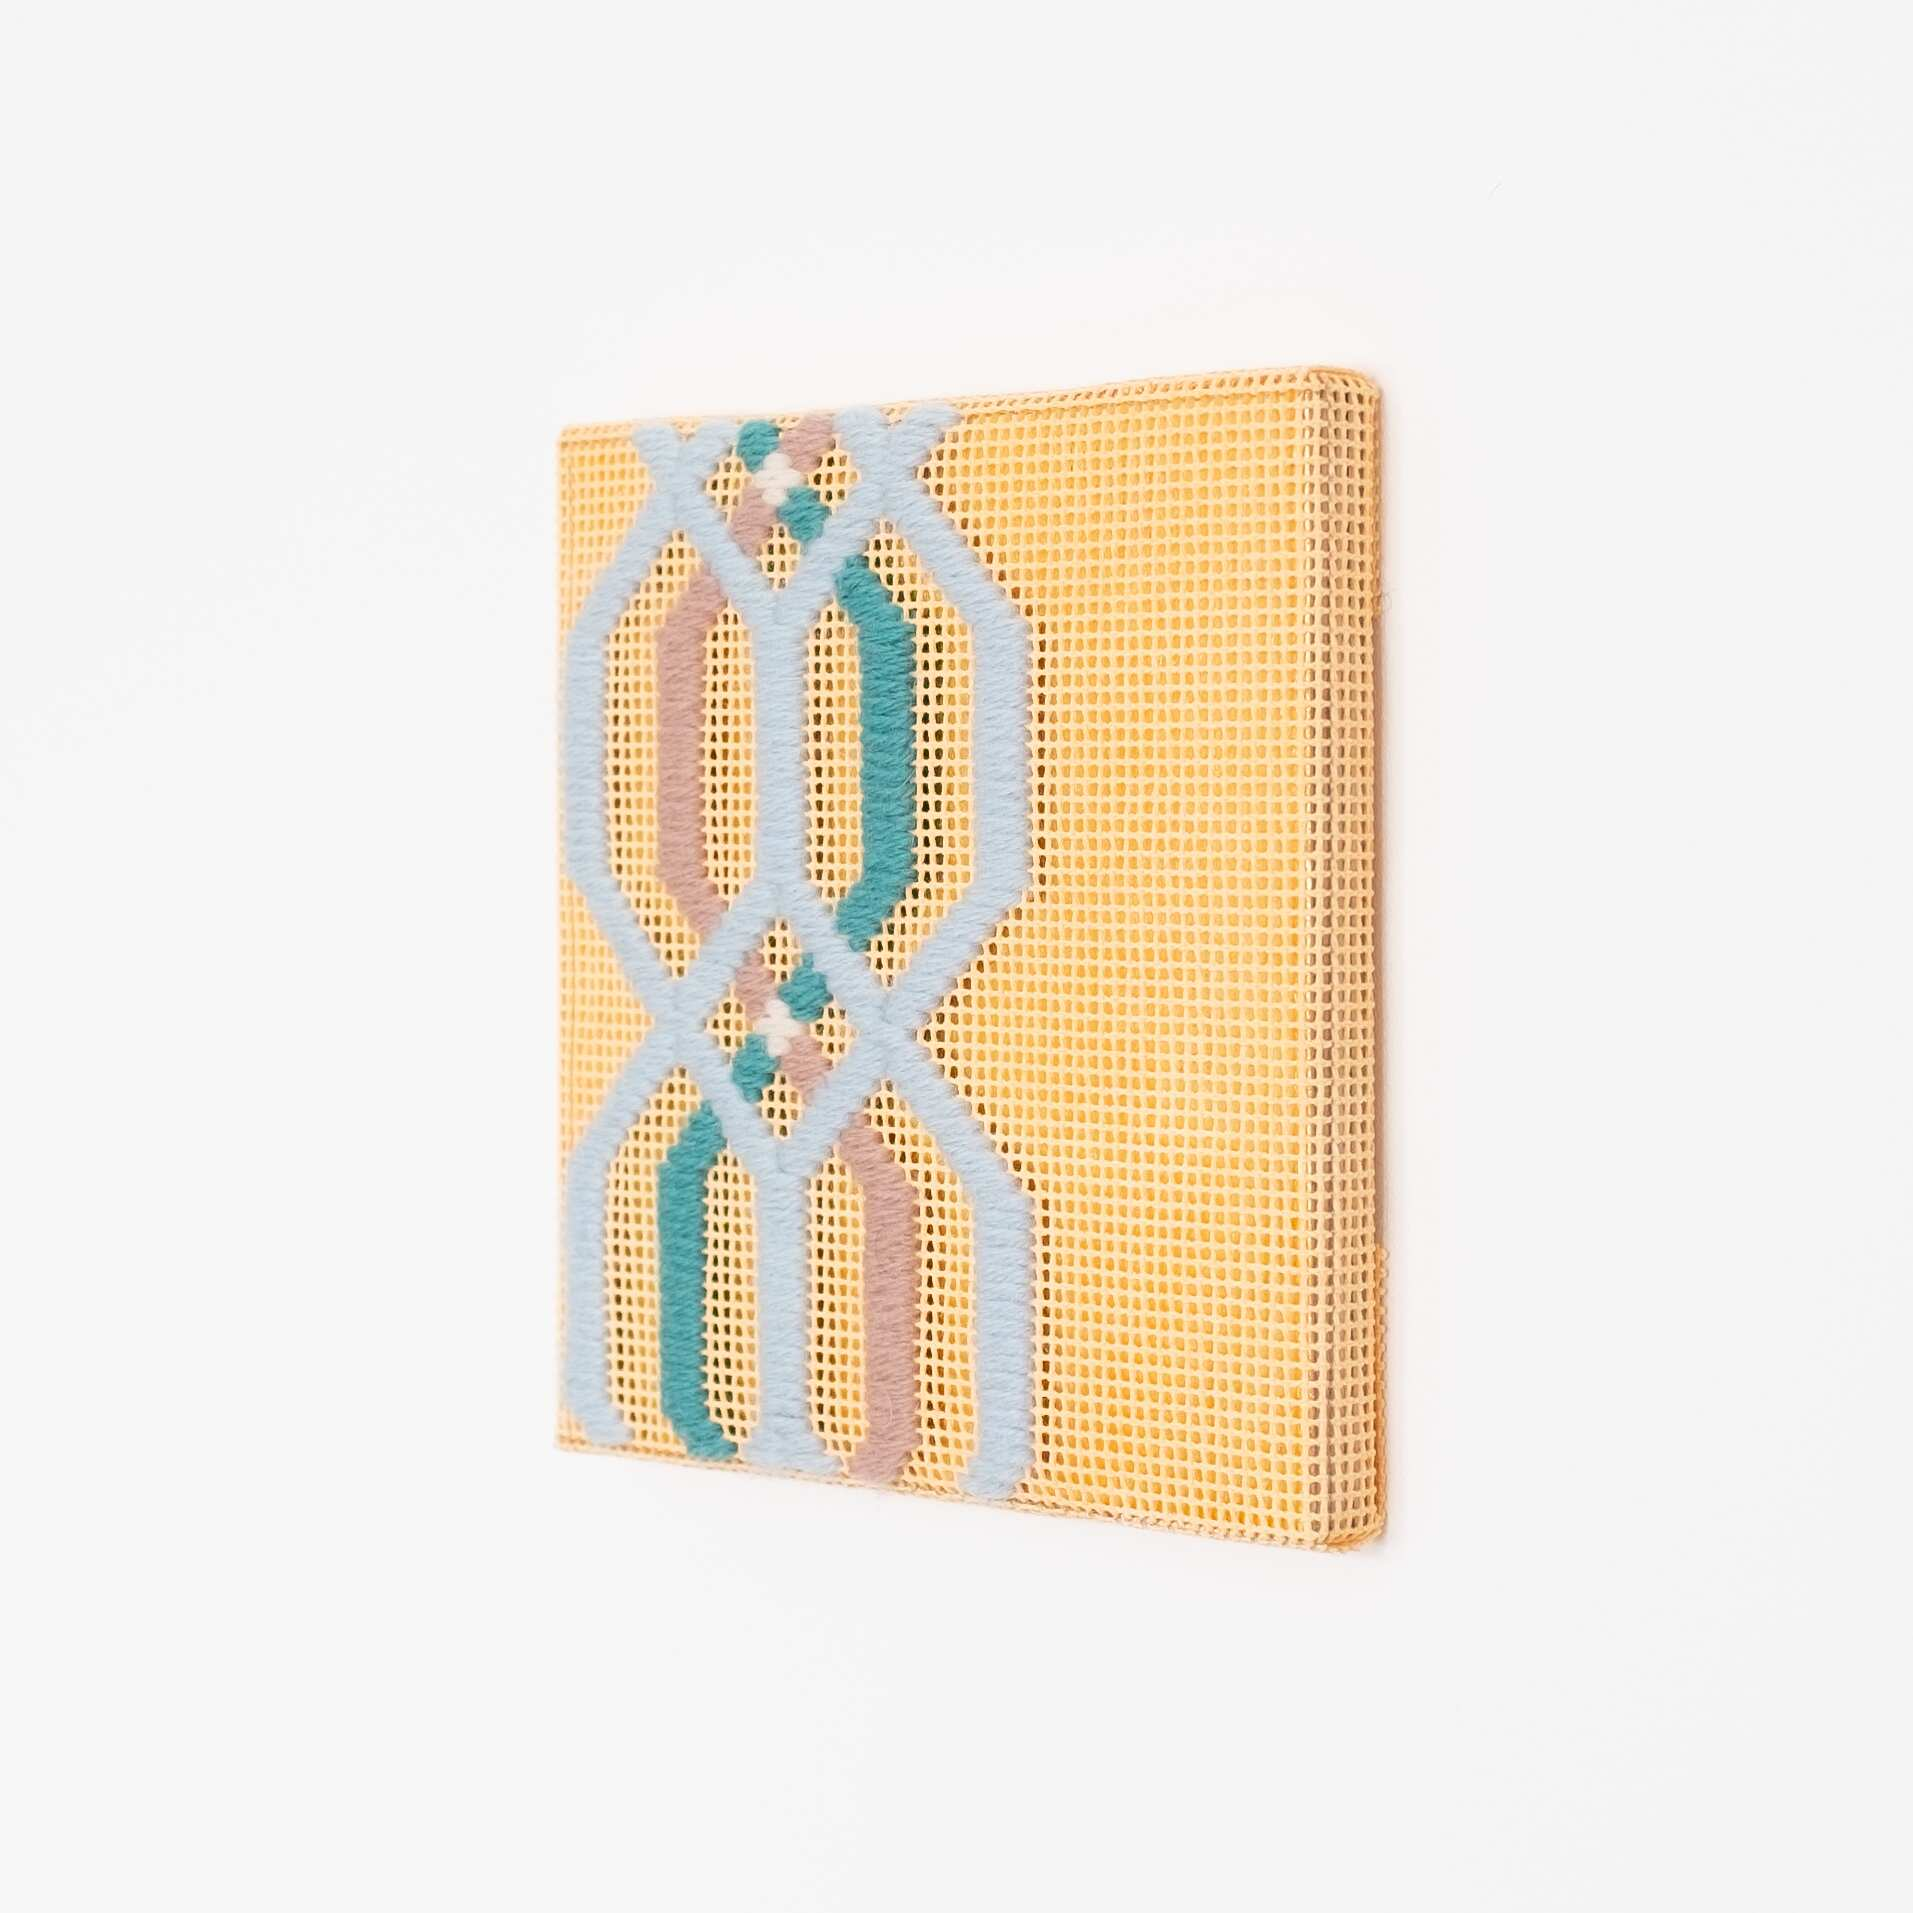 Border fragment [blue-teal-brown on peach], Hand-embroidered wool thread and acrylic paint on canvas over gilded panel, 2021